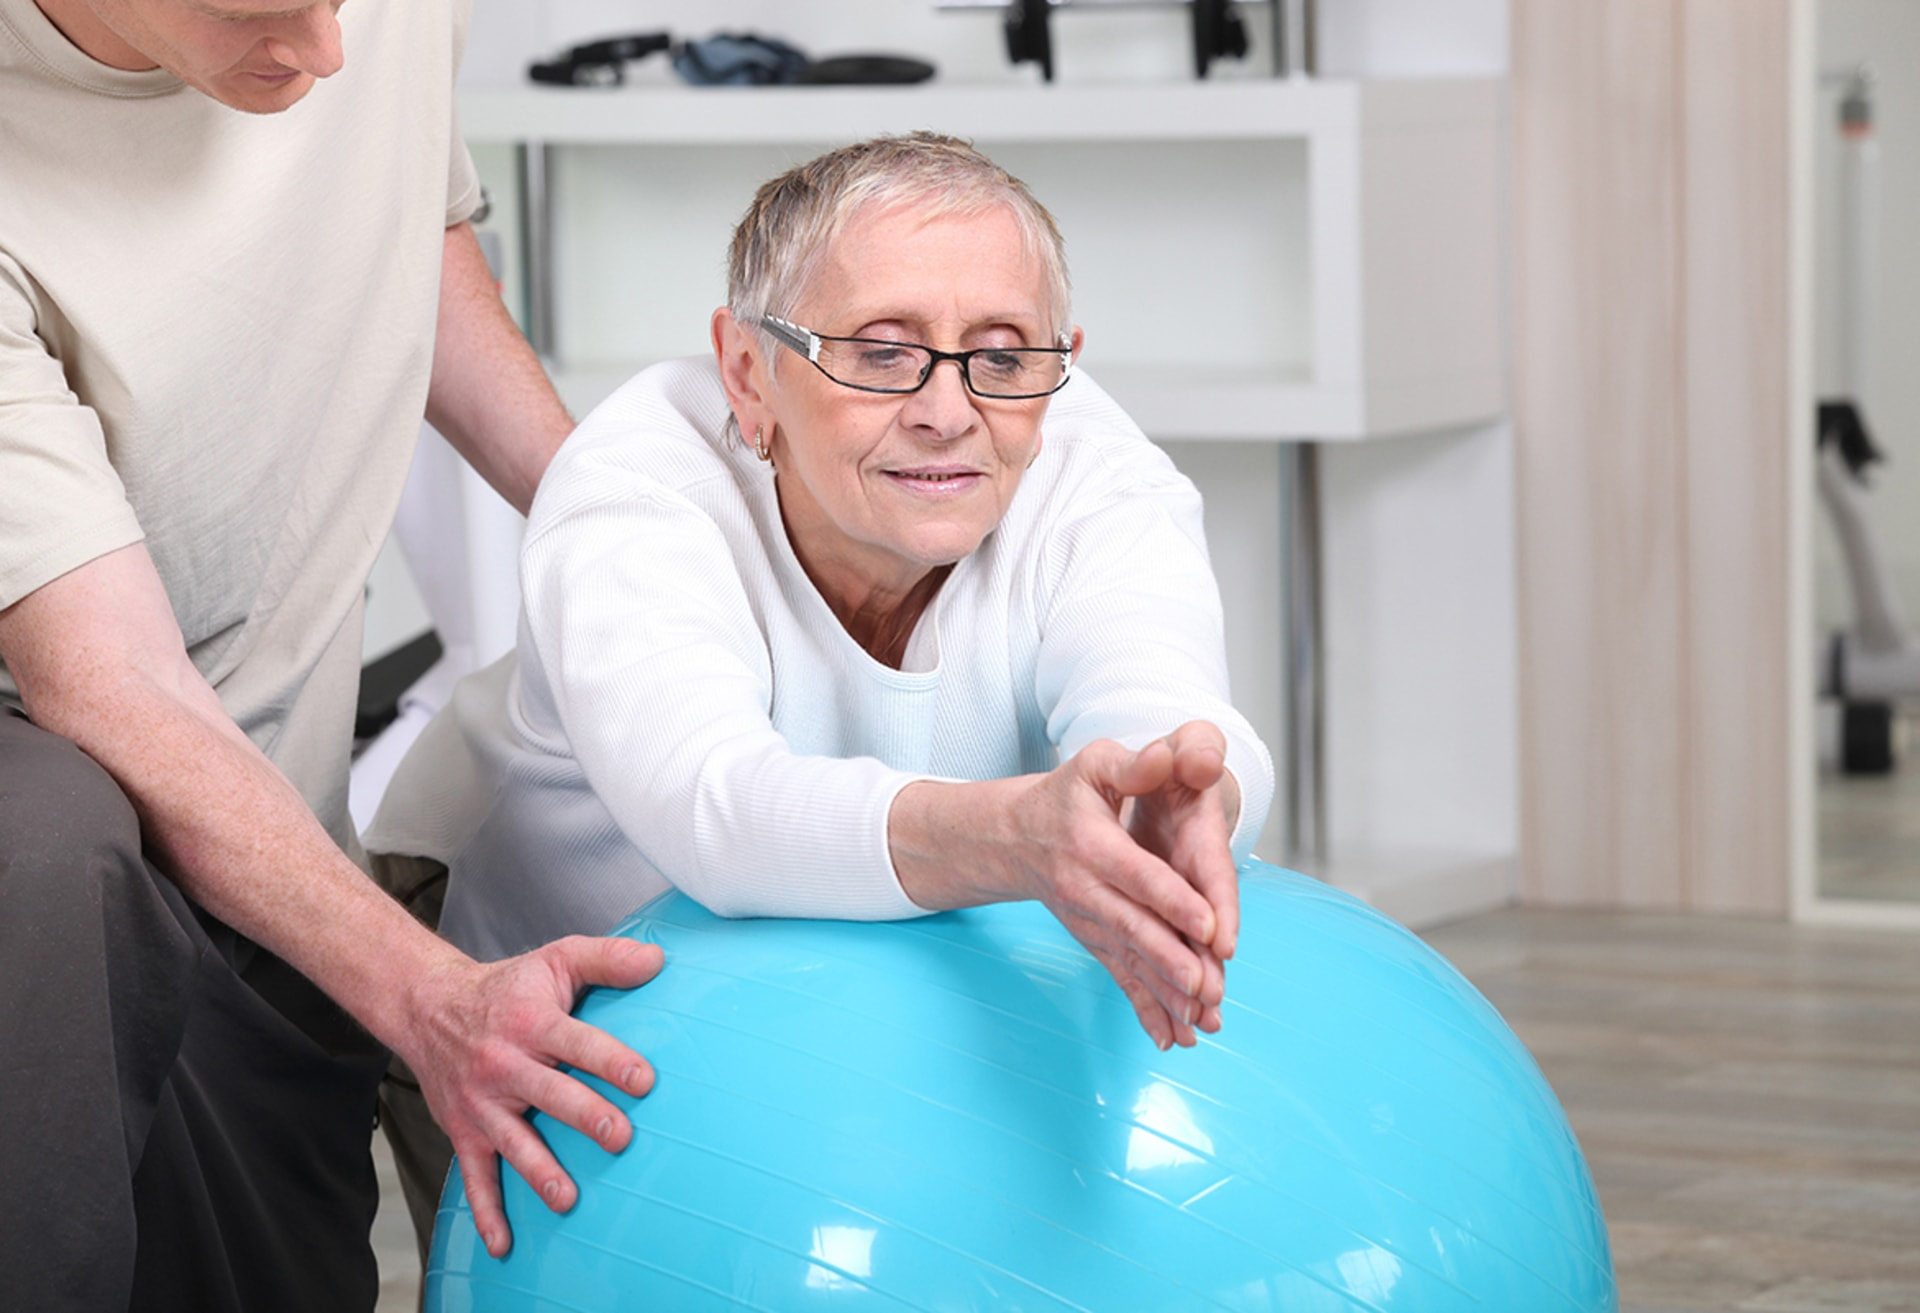 CHRONIC OR DEGENERATIVE DISEASES, A GENERAL LACK OF PHYSICAL CONDITION